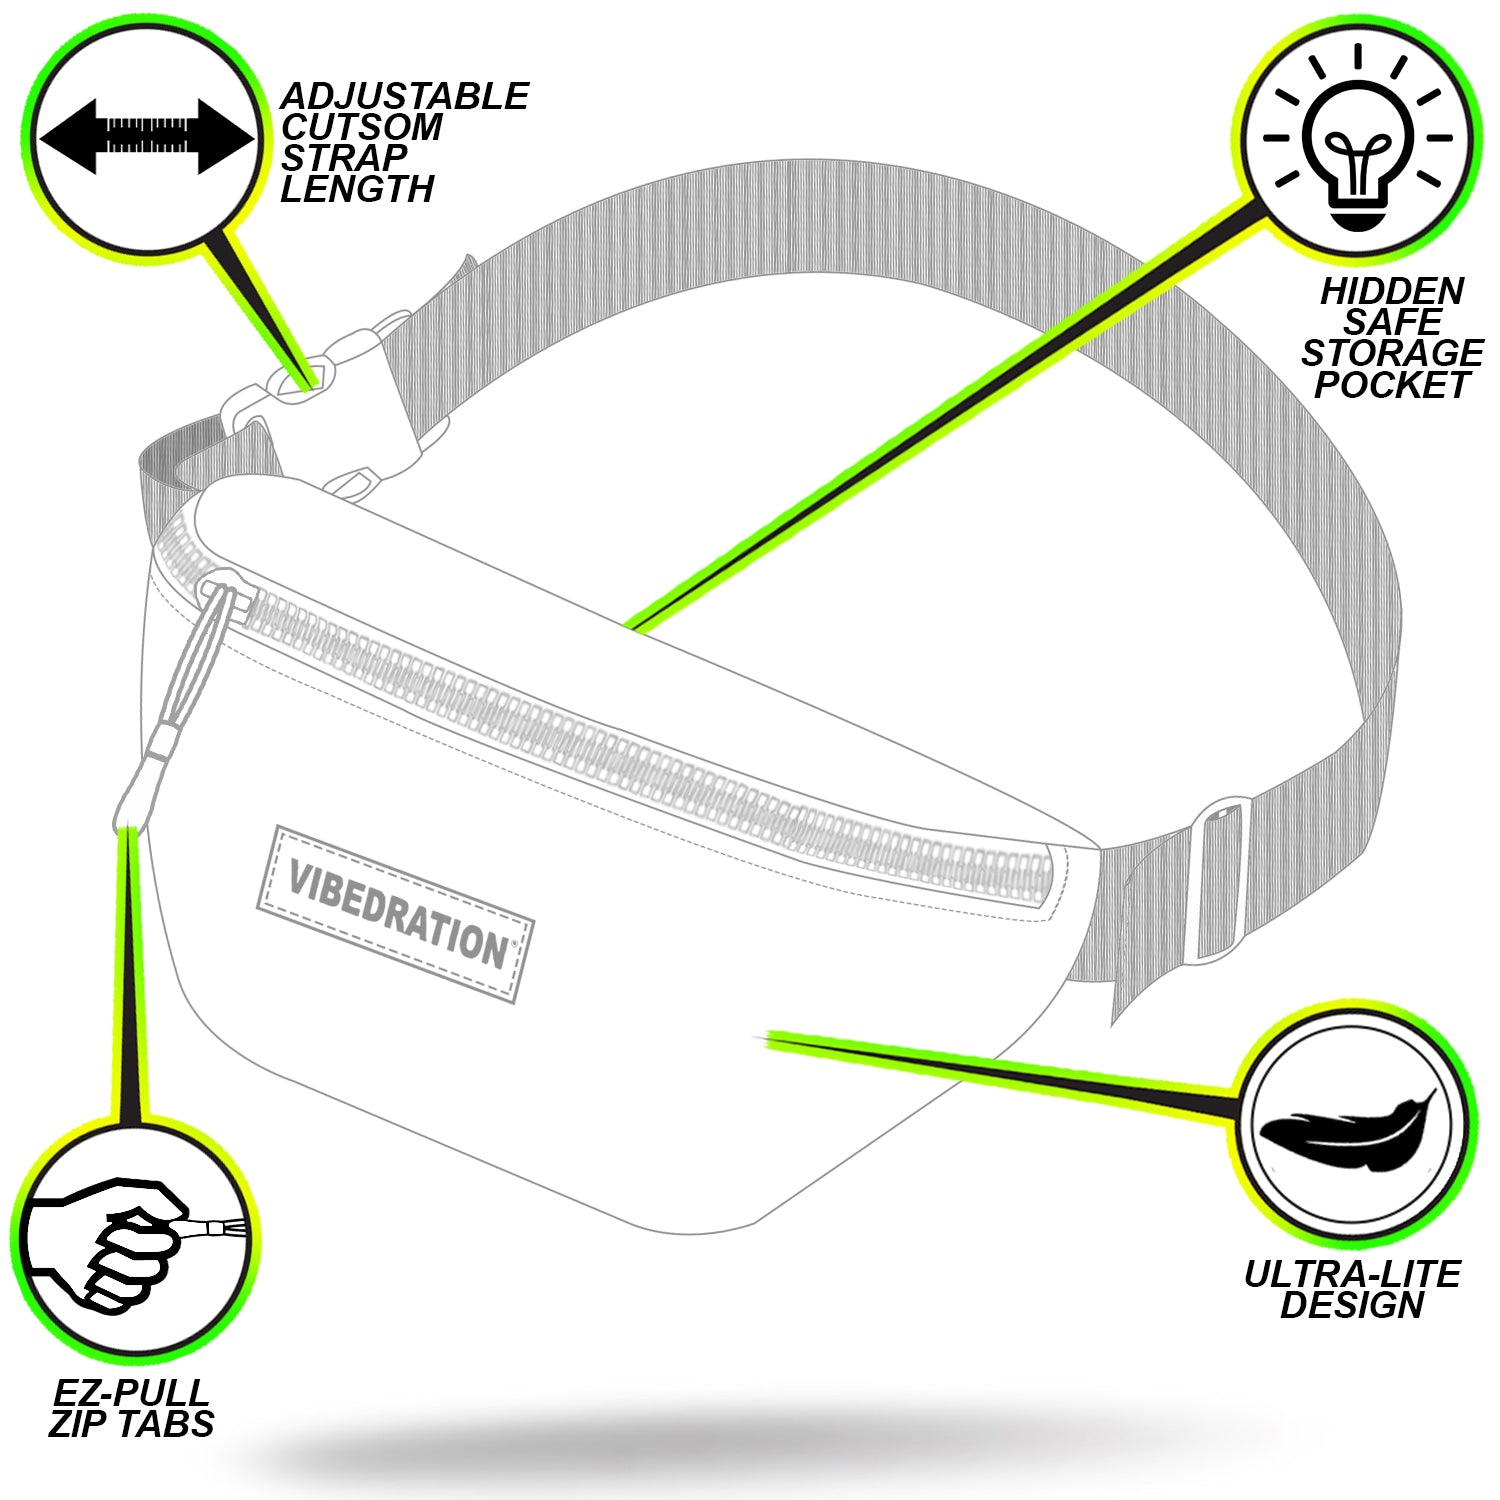 Adjustable fanny pack for music festivals